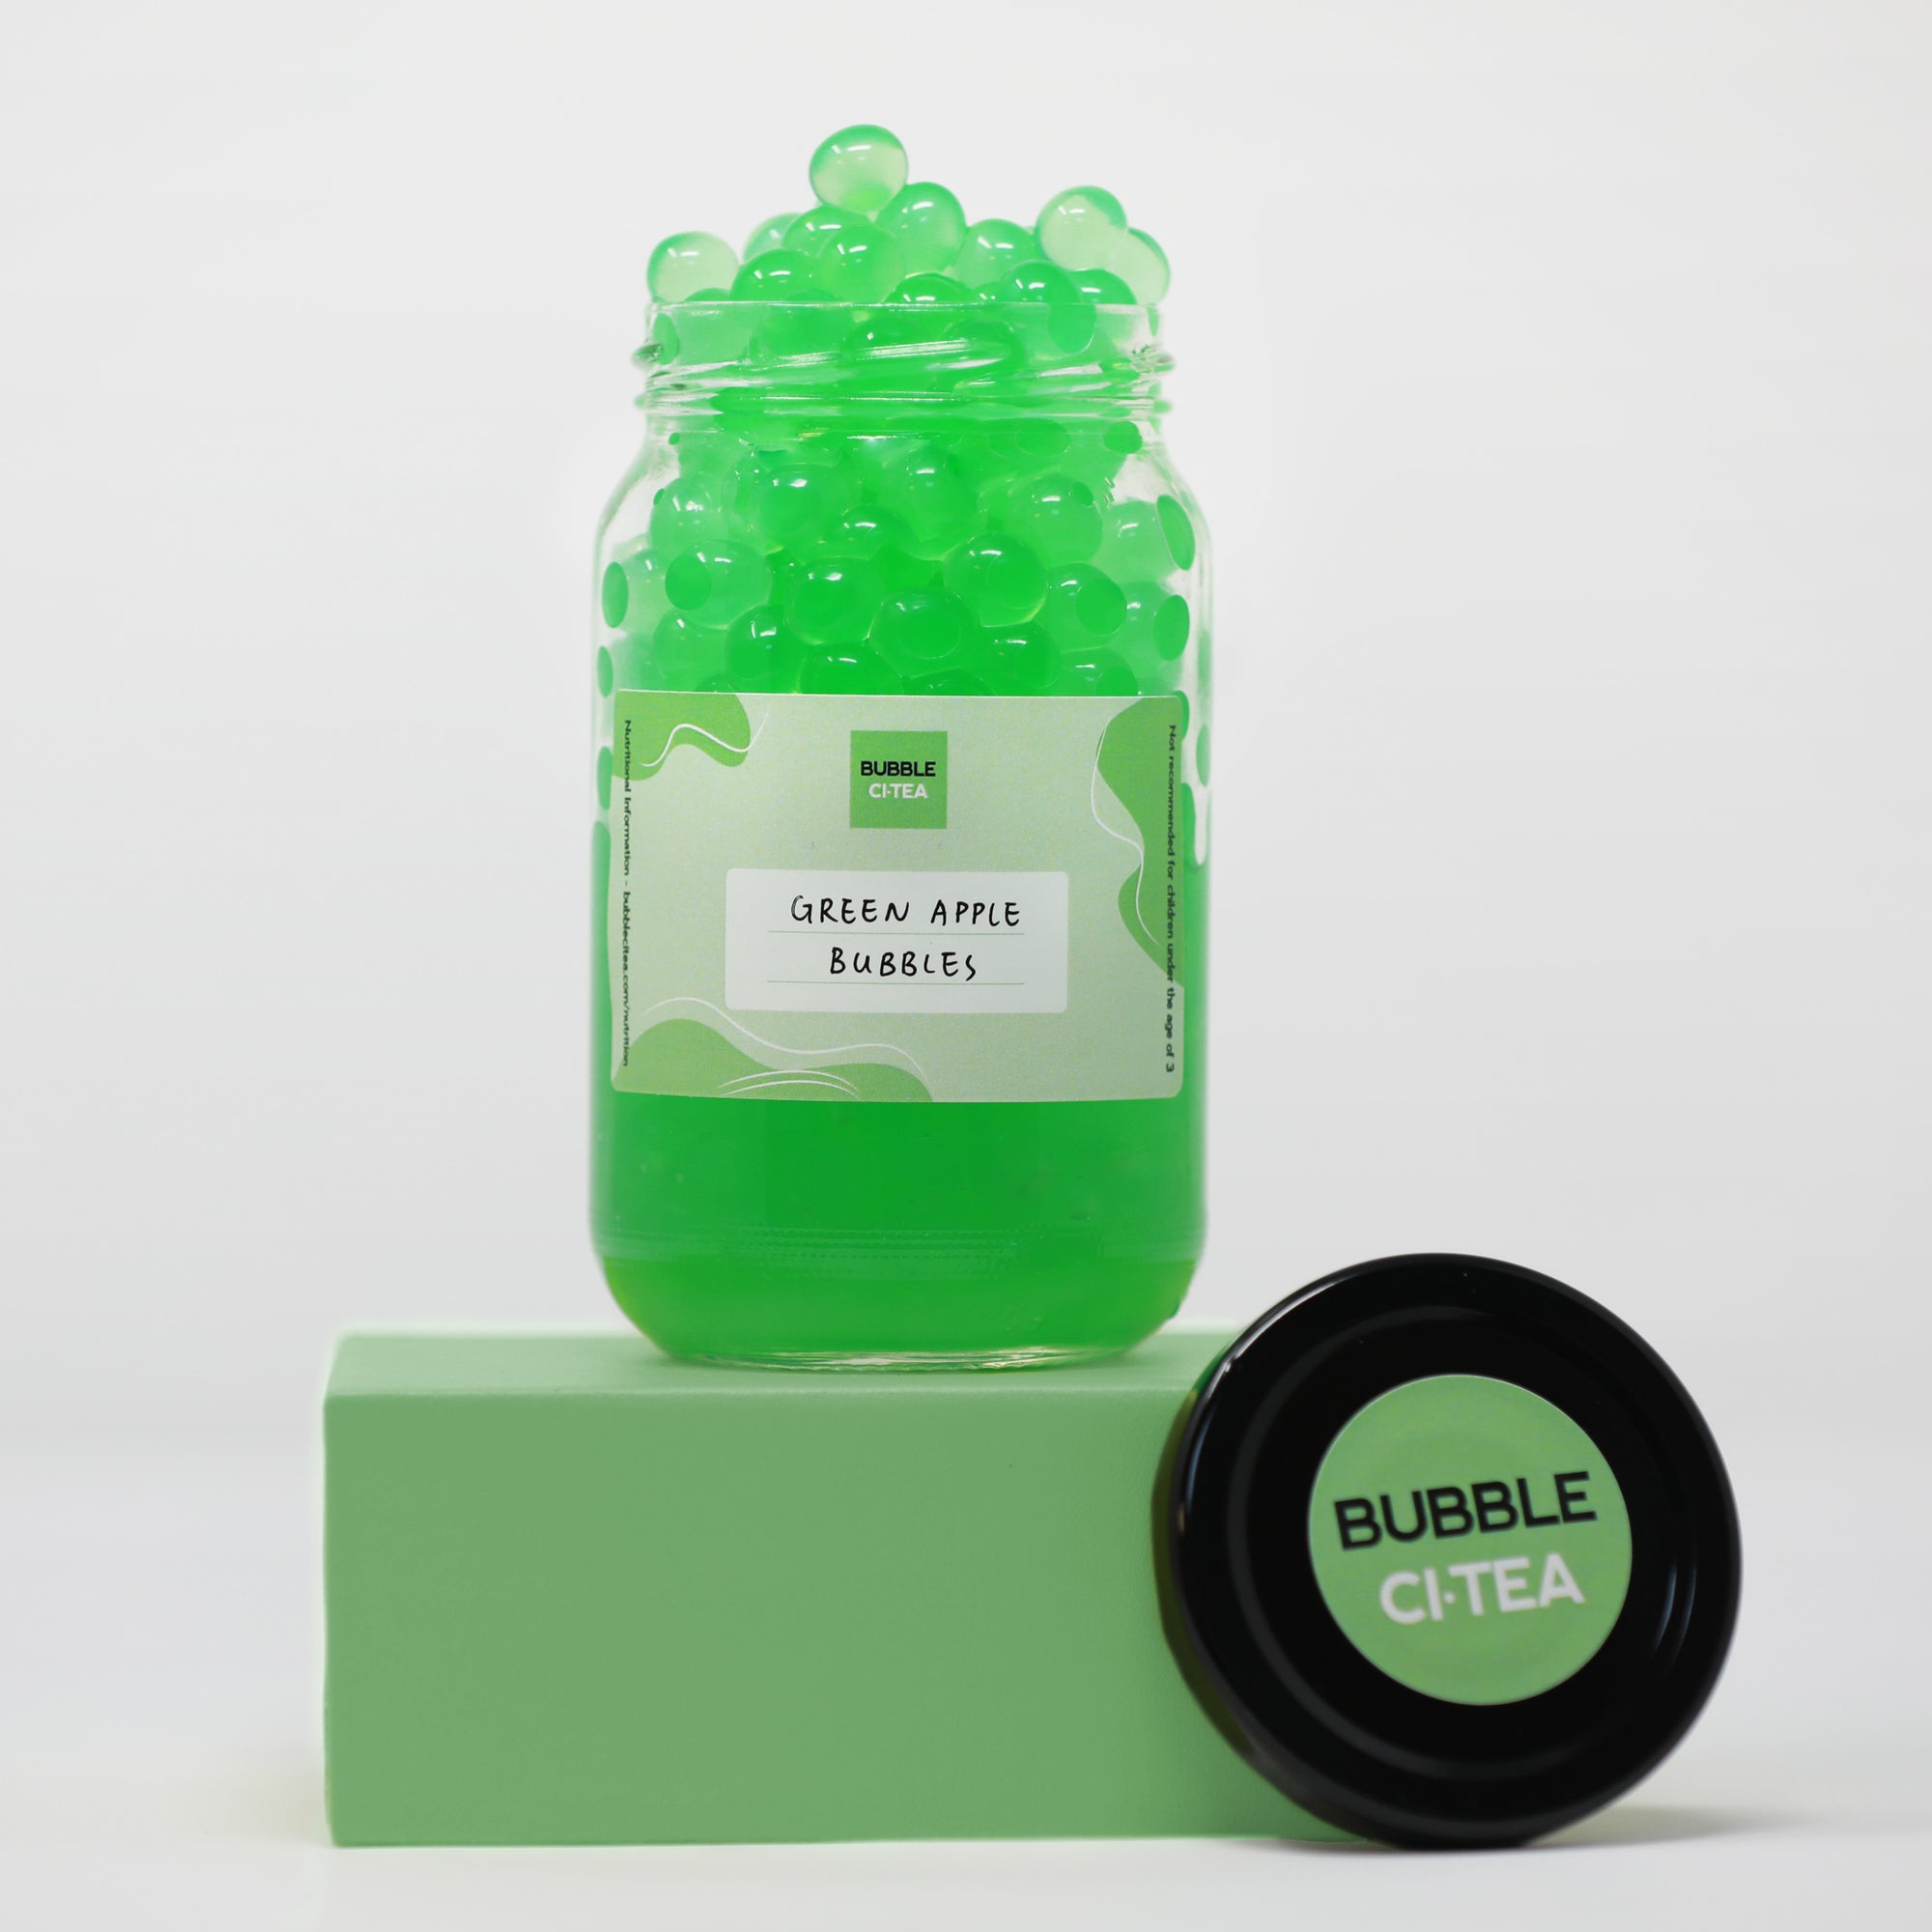 Glass jar with green apple popping bubbles sitting on a green stand